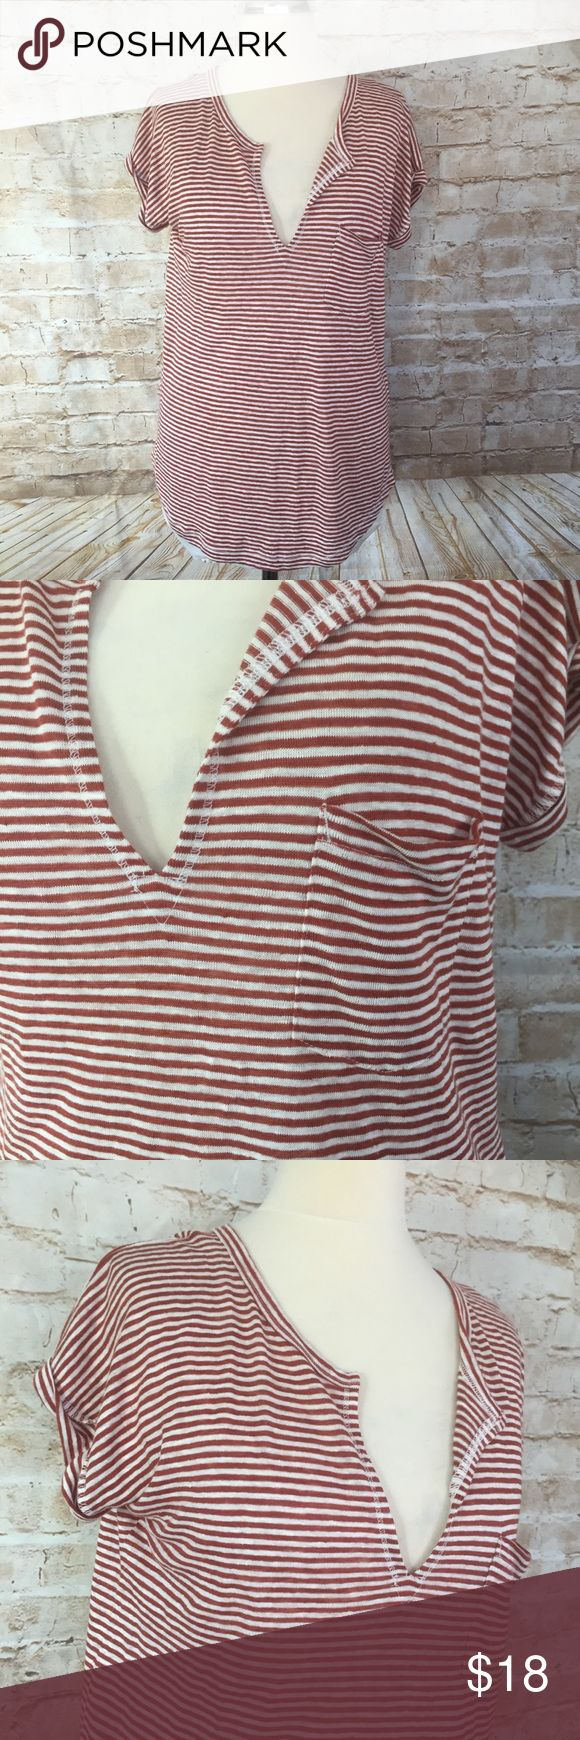 Madewell XS Linen Red White Stripe Shirt Top Madewell XS Linen Red White Stripe Shirt Top  Condition: No flaws  Color: red and white stripe  Pullover  100% Linen  Shirt hem Hand wash Measurements:  18 inches across bust  22-24 inches length from under arm to hem   /344/ Madewell Tops Blouses